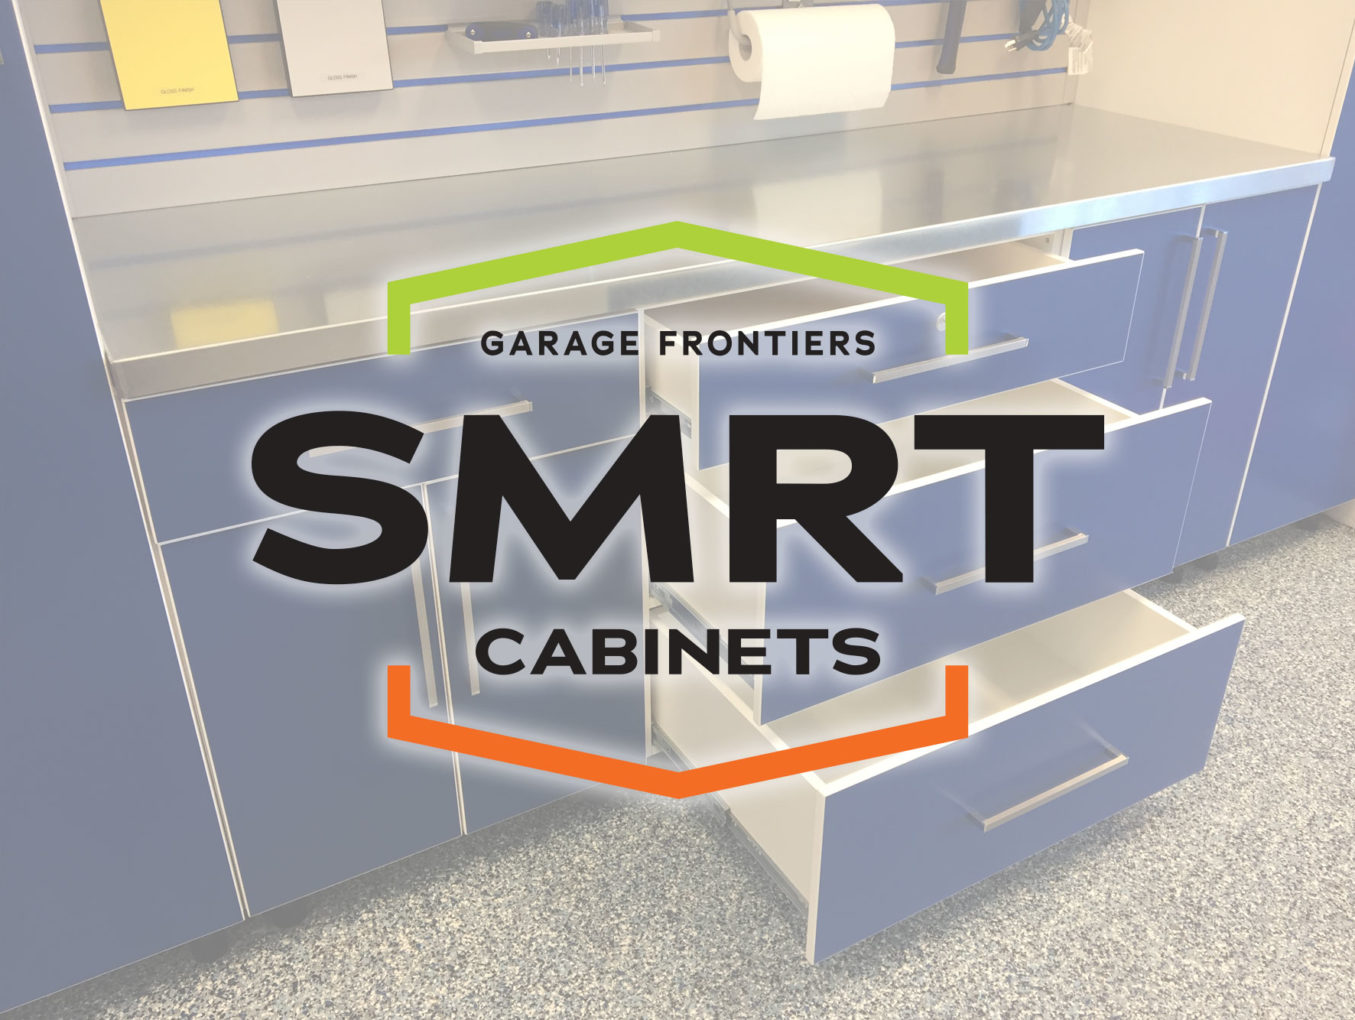 With SMRT Cabinets you can have it all for less